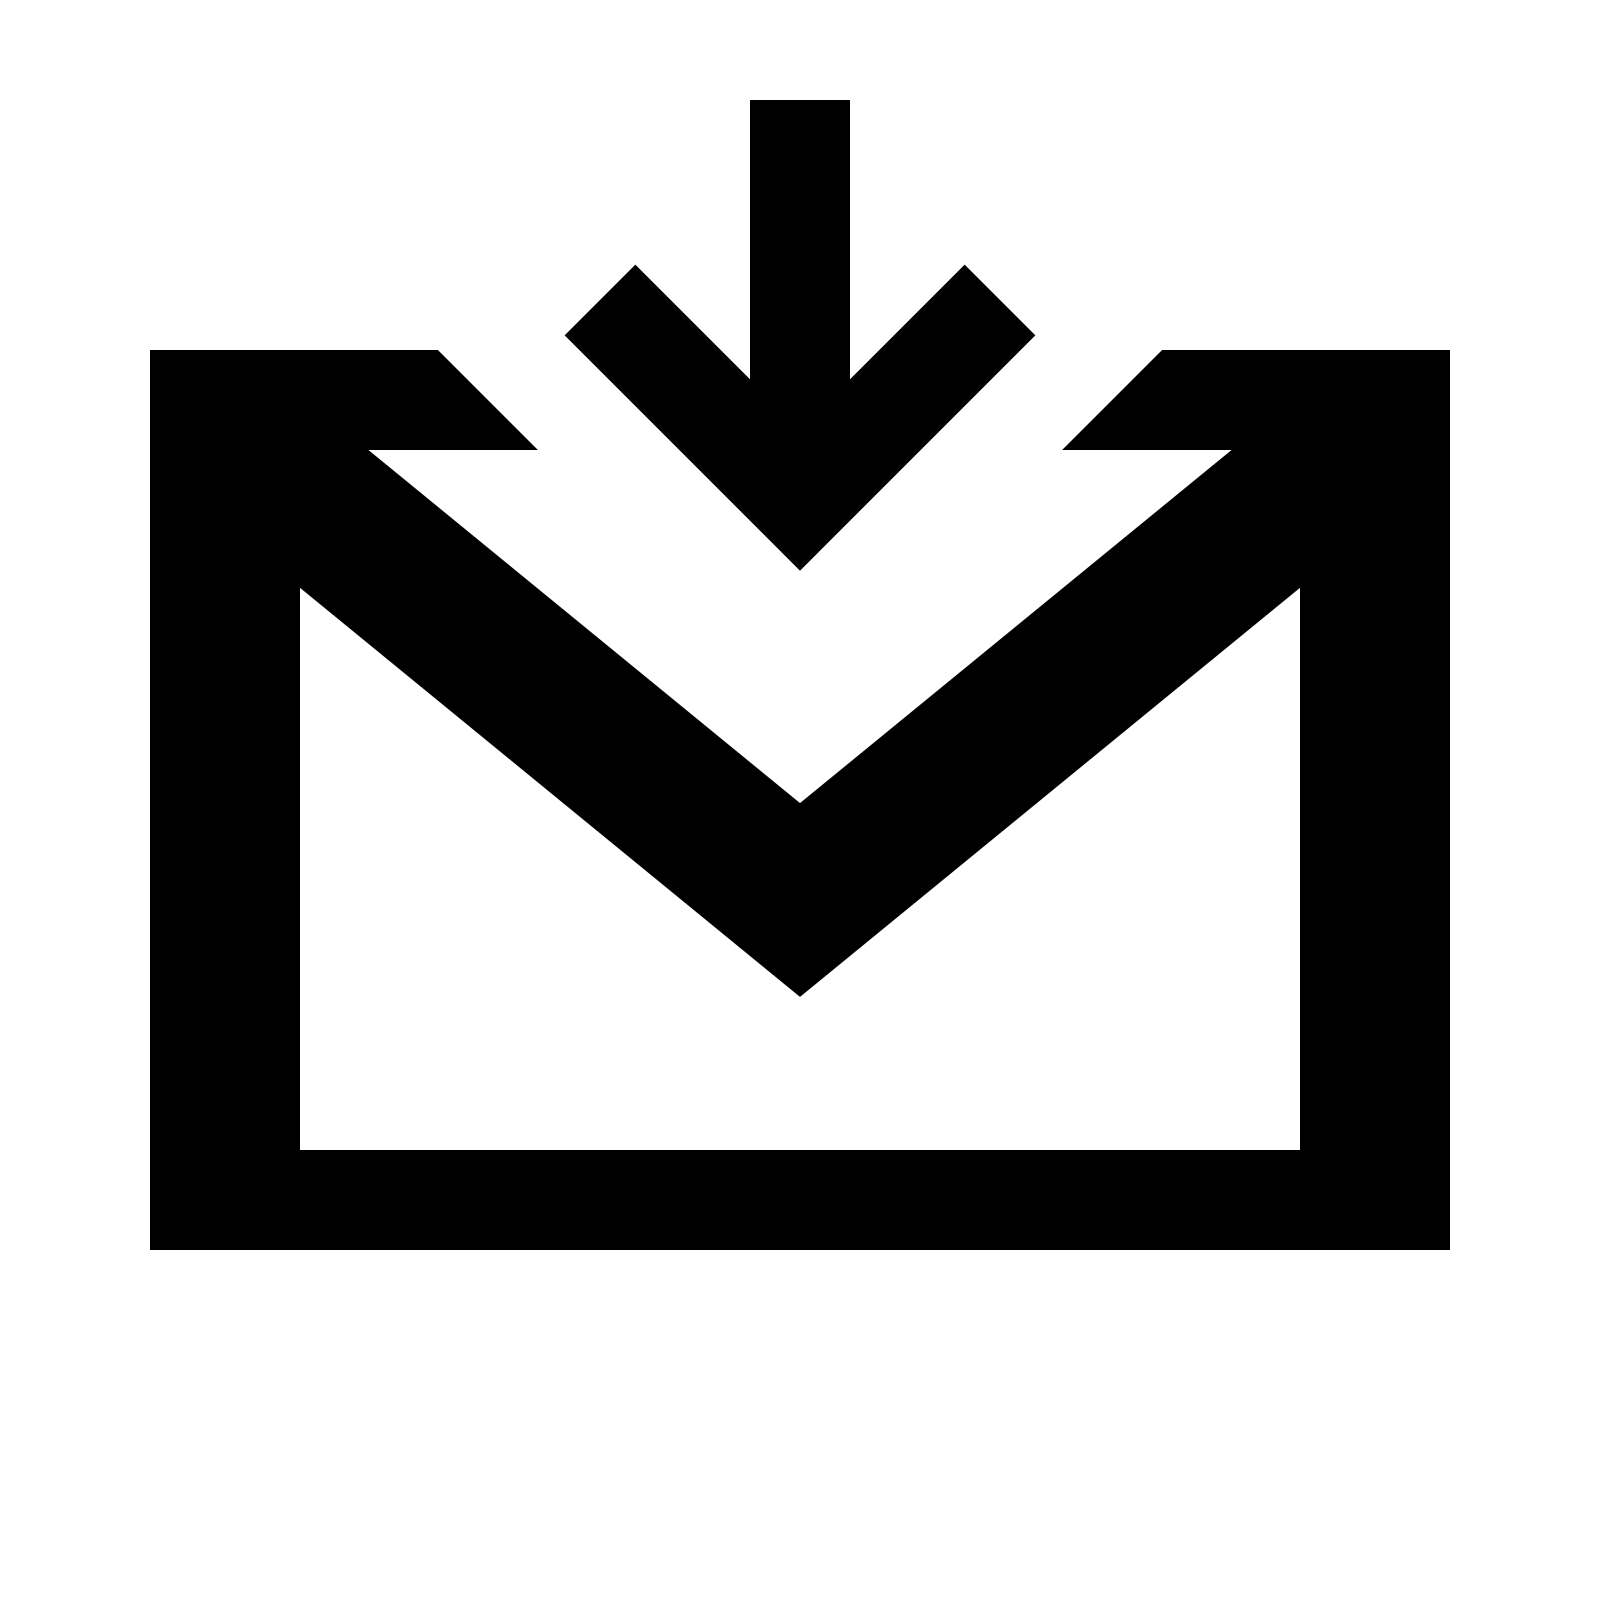 Vector free icons and. Gmail icon png